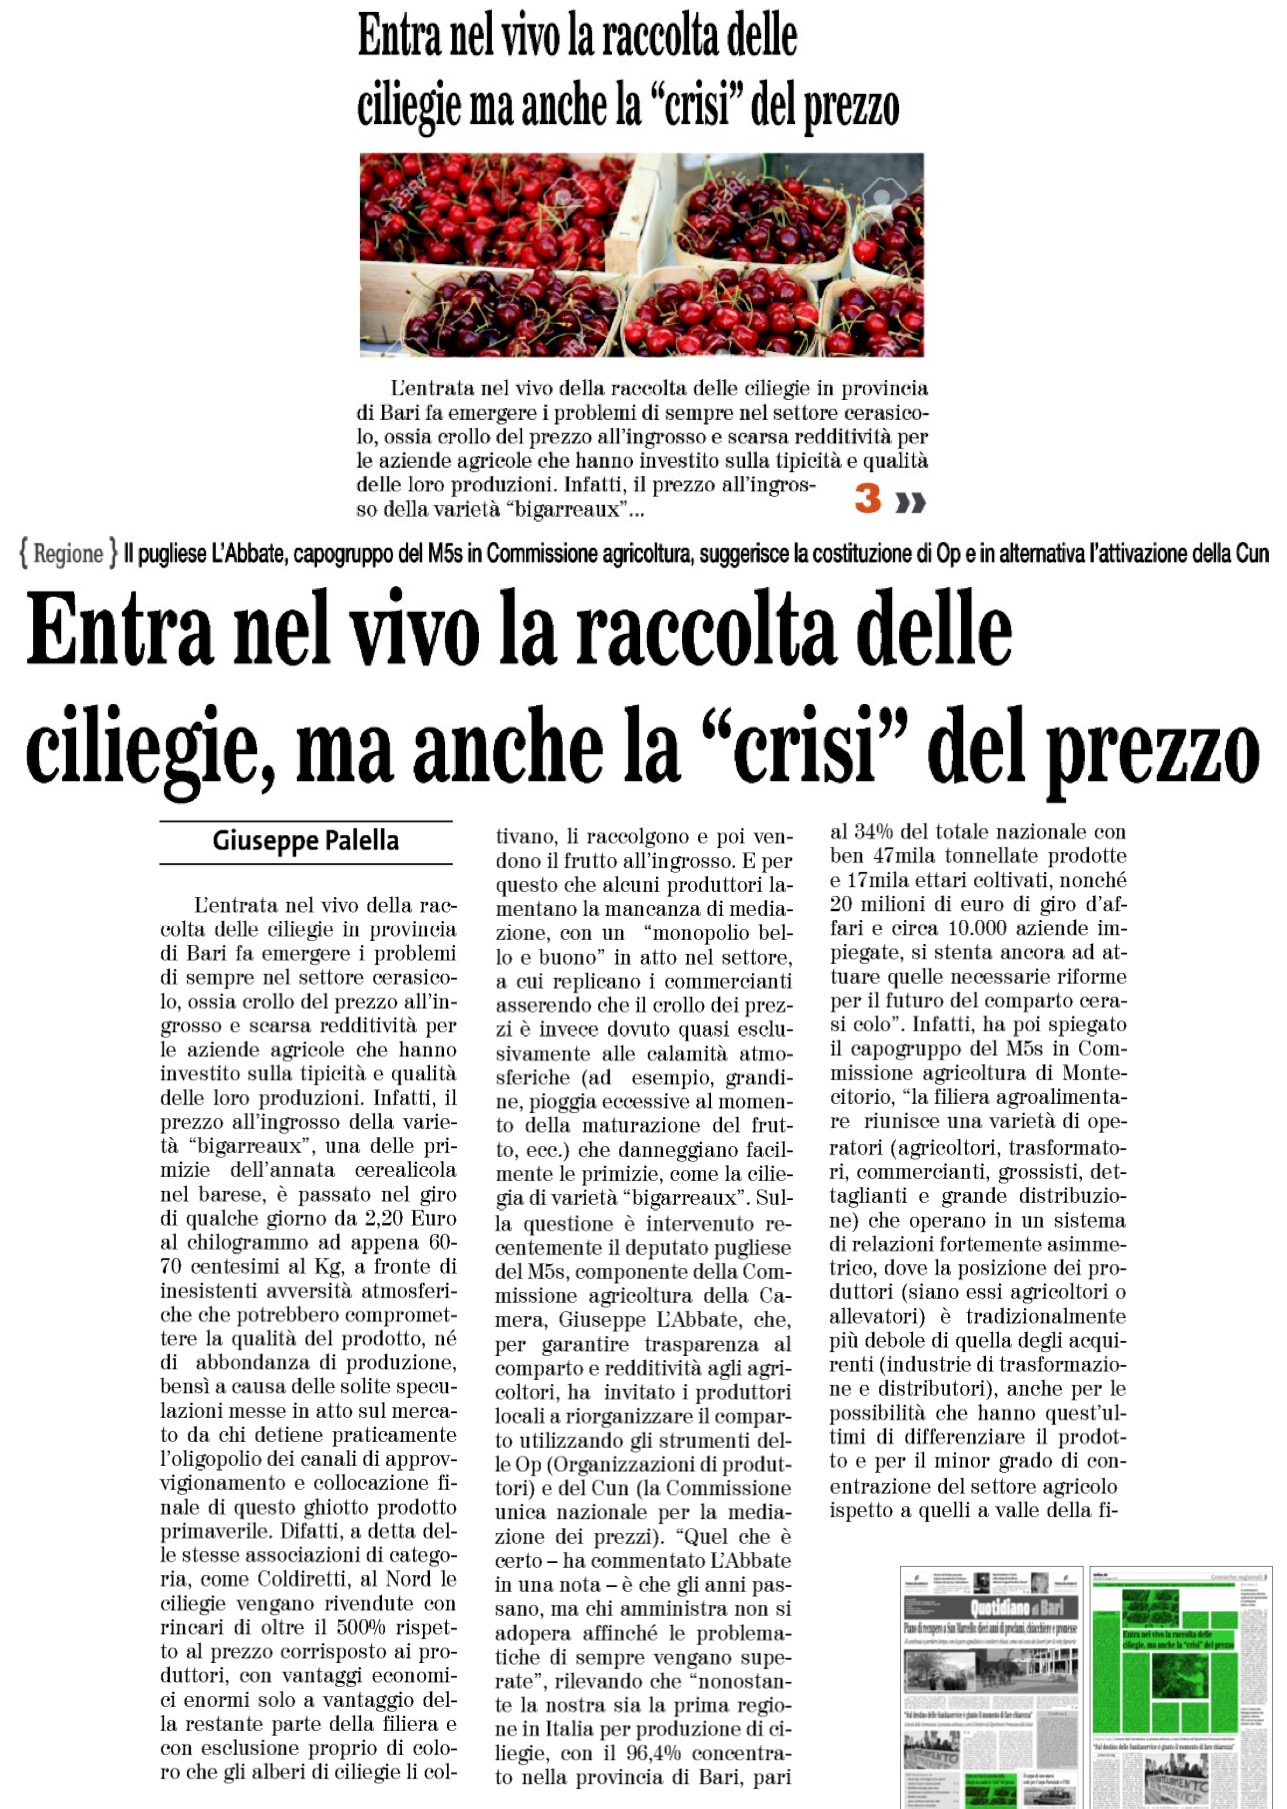 Il Quotidiano di Bari - 18.05.2017